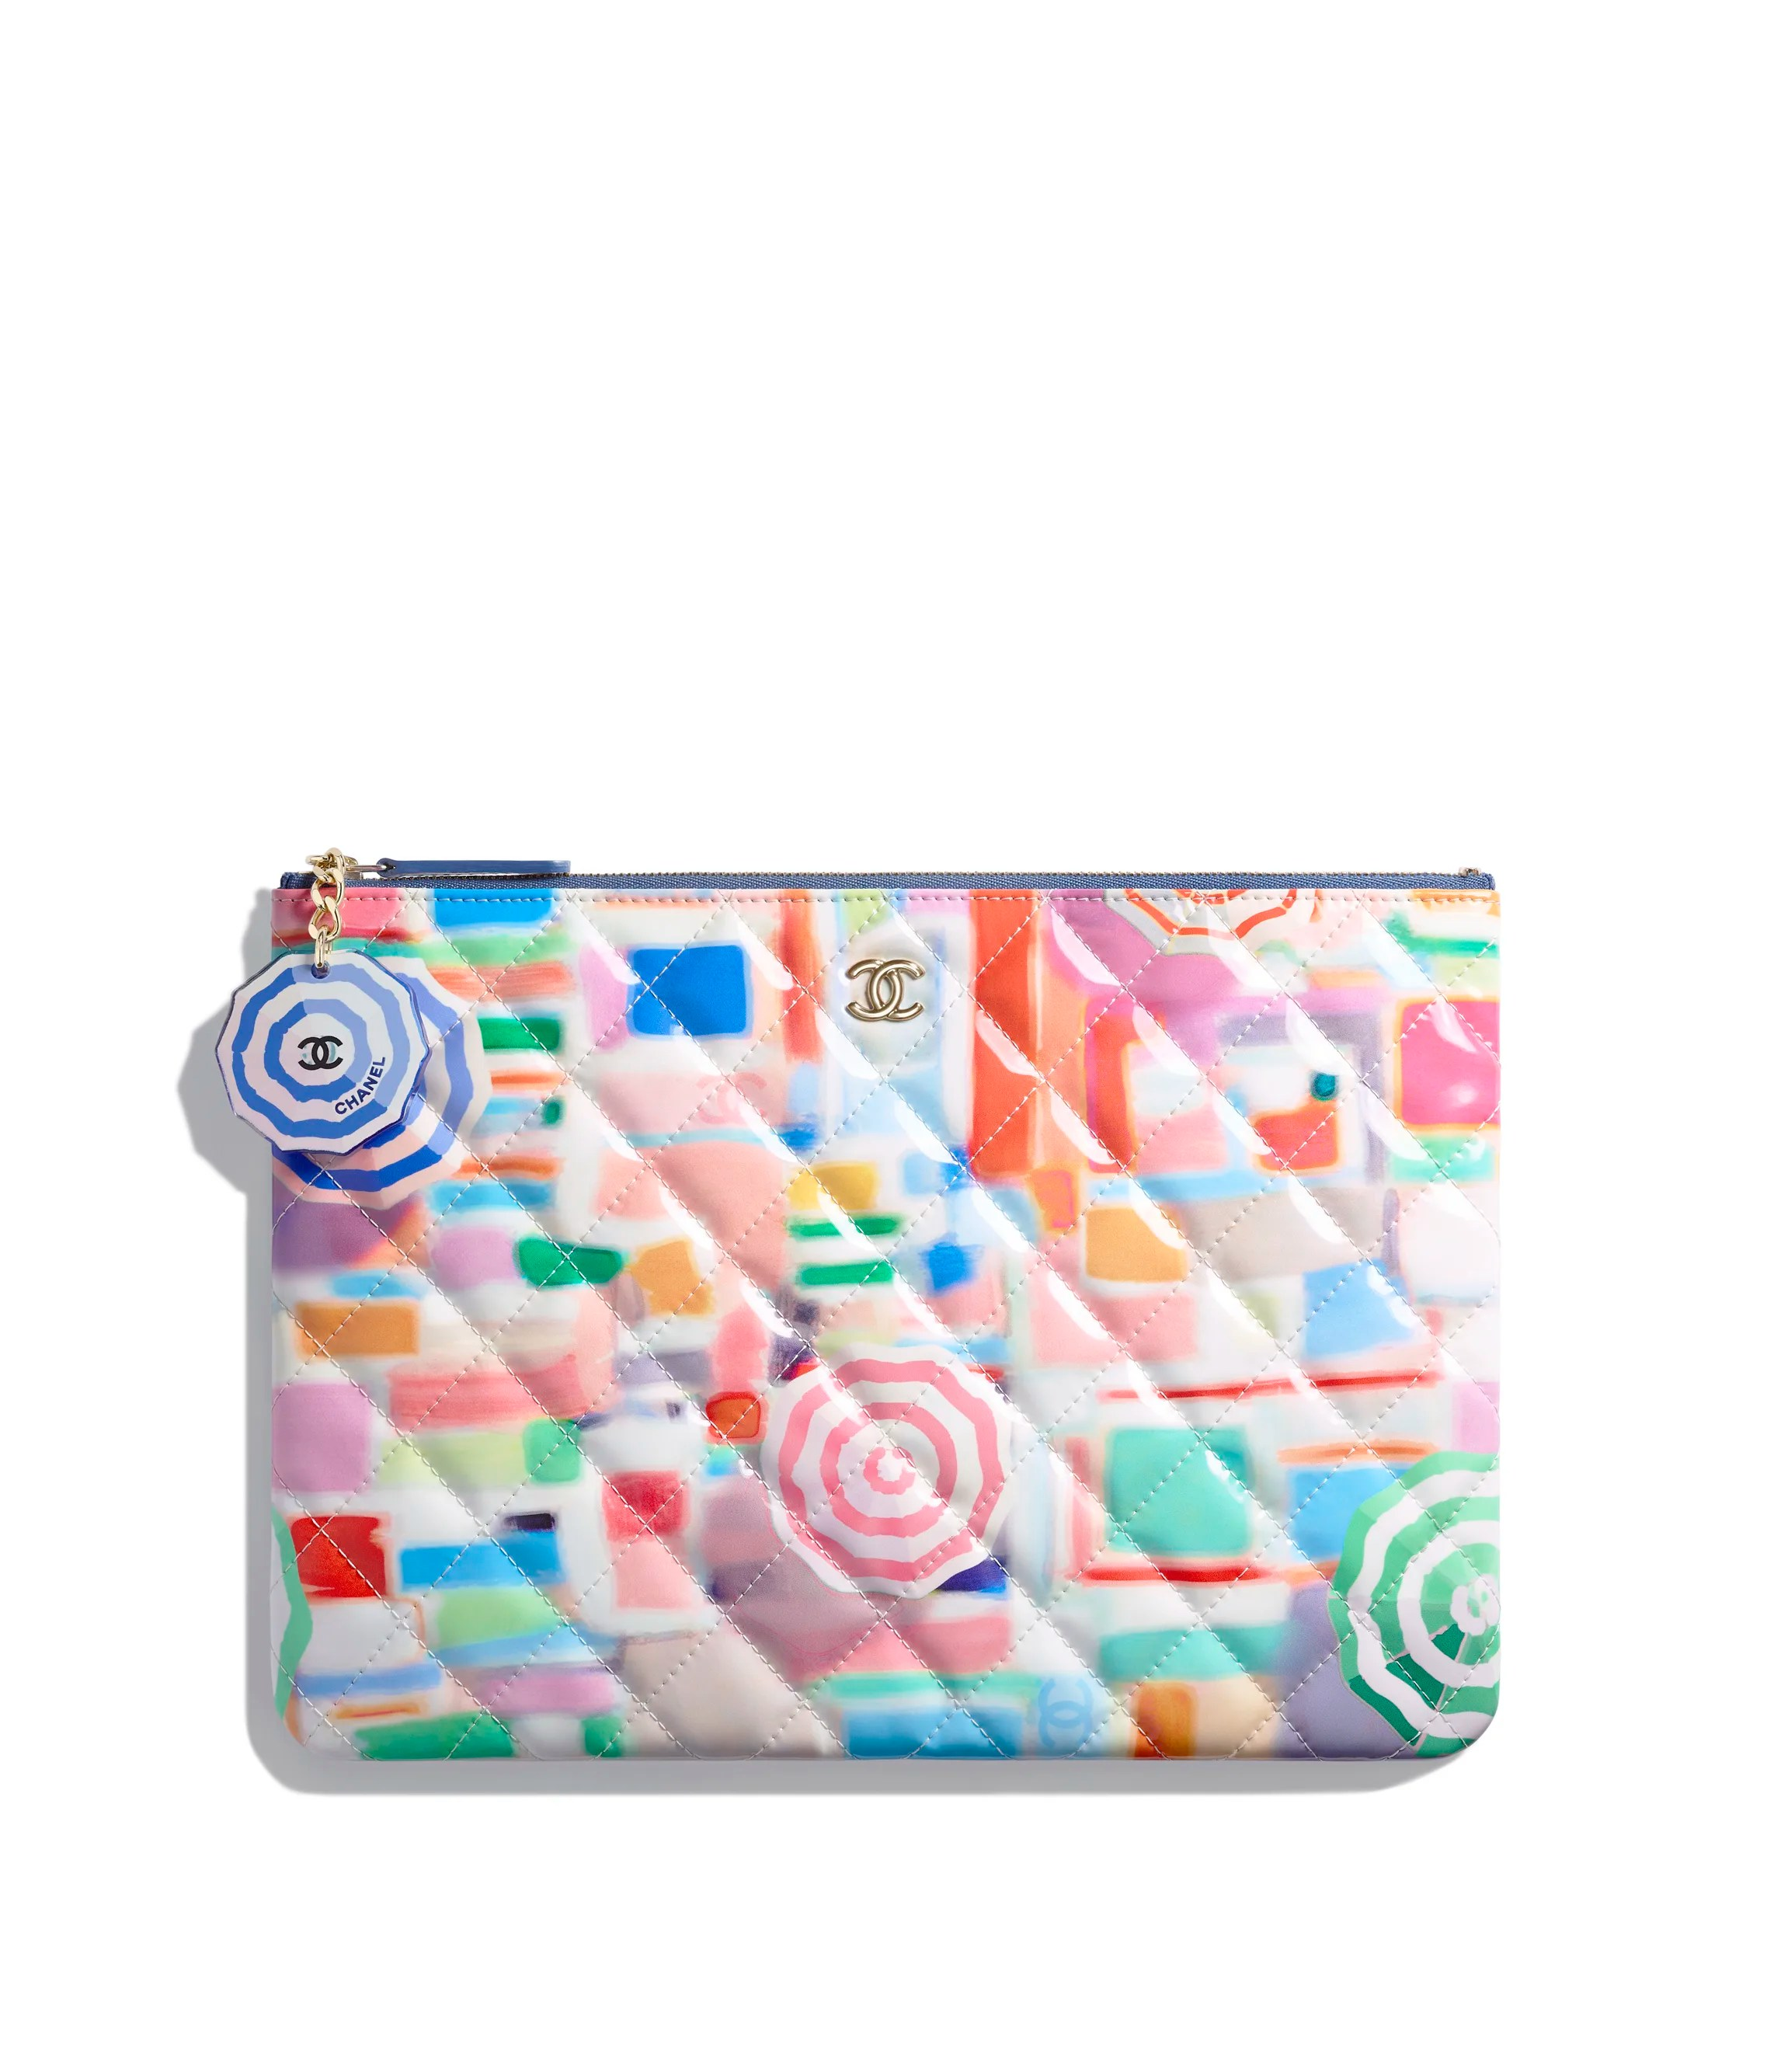 Quilt Online Kaufen Small Leather Goods Chanel